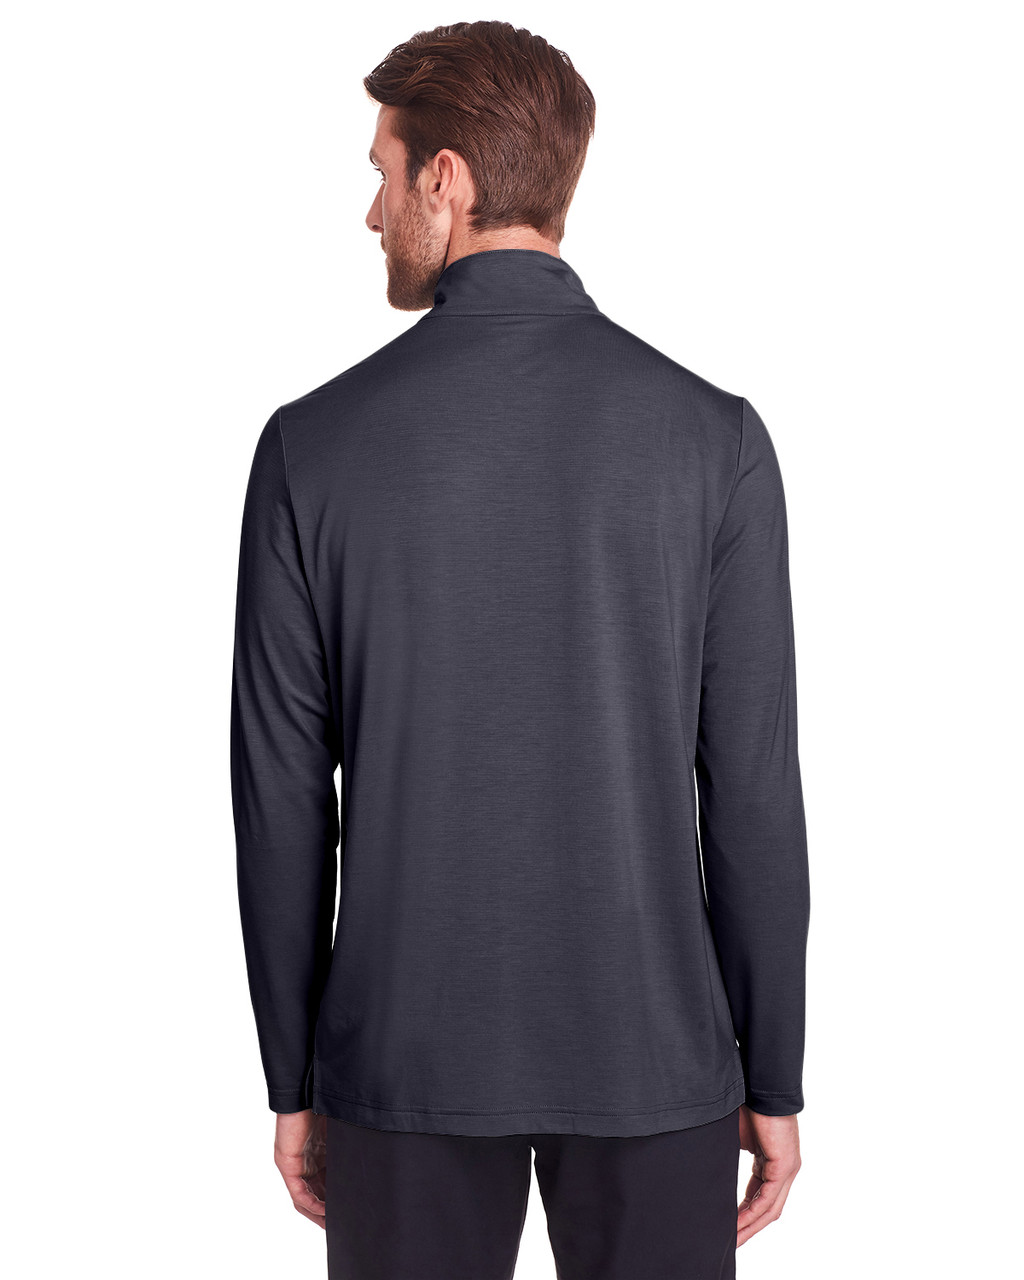 Carbon - Back, NE400 North End Men's Jaq Snap-Up Stretch Performance Pullover Long Sleeve Shirt | BlankClothing.ca